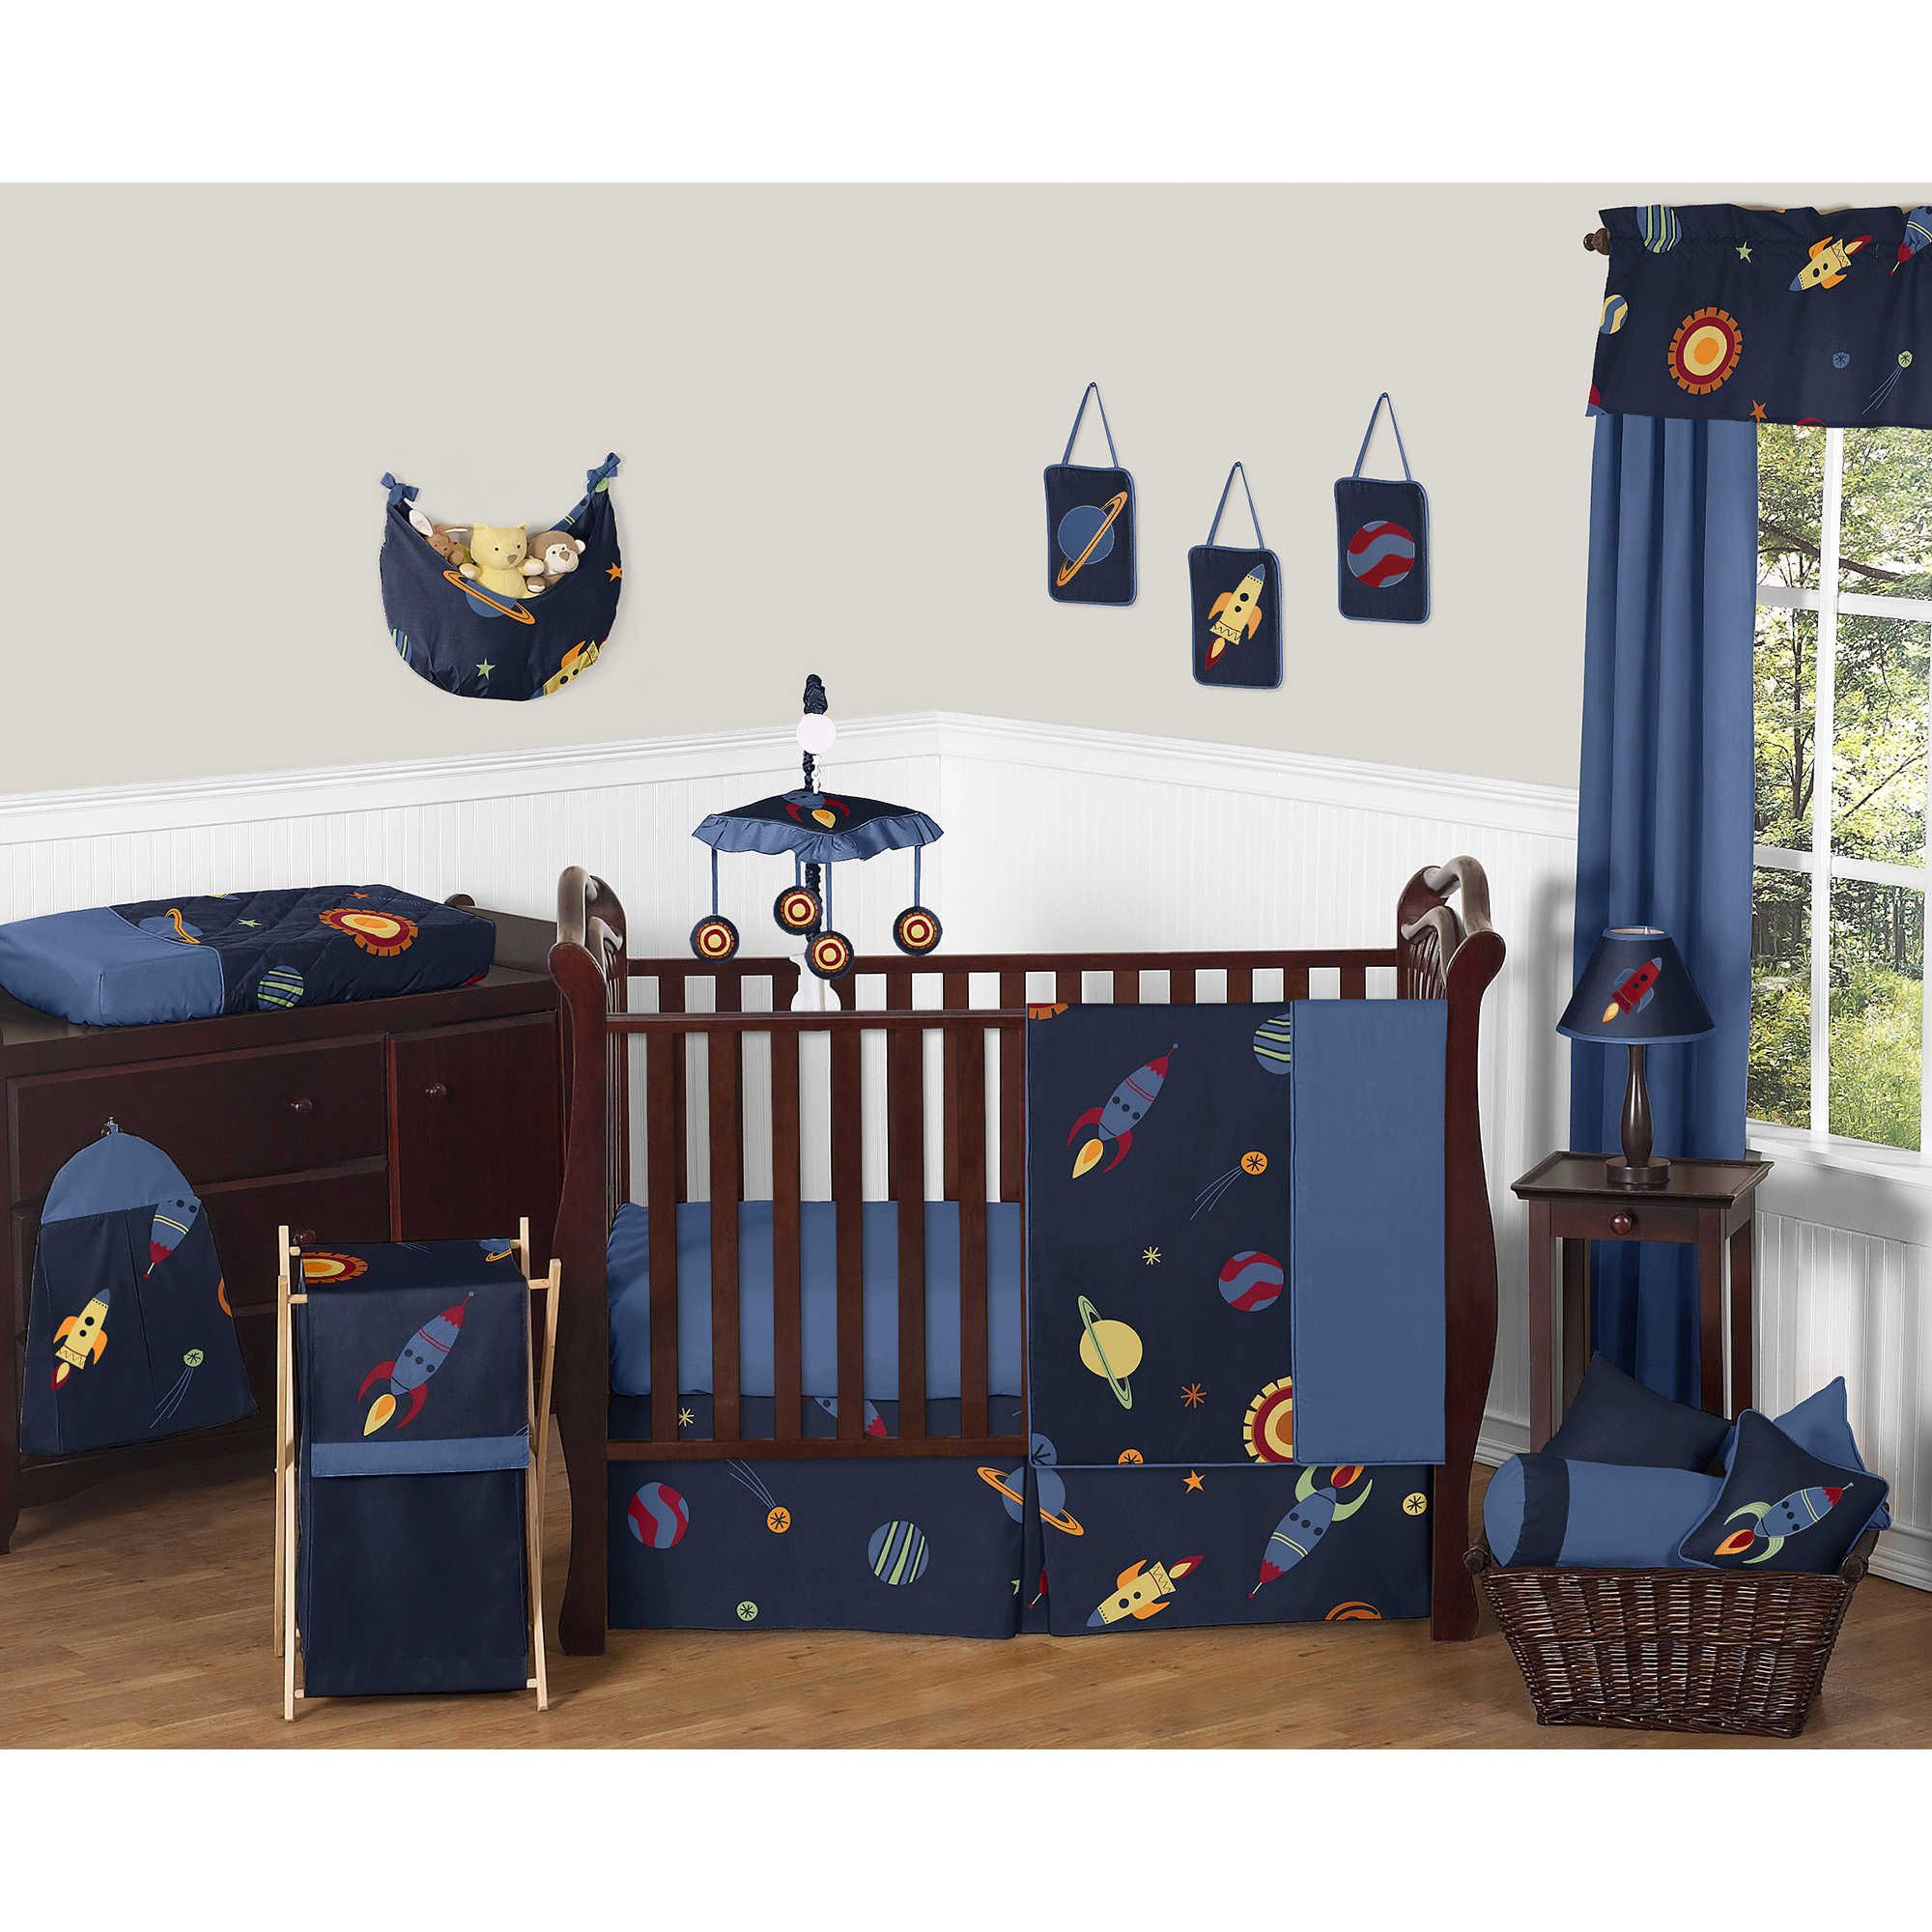 emma free baby piece collection set bedding cribs shipping crib sweet overstock product today jojo designs